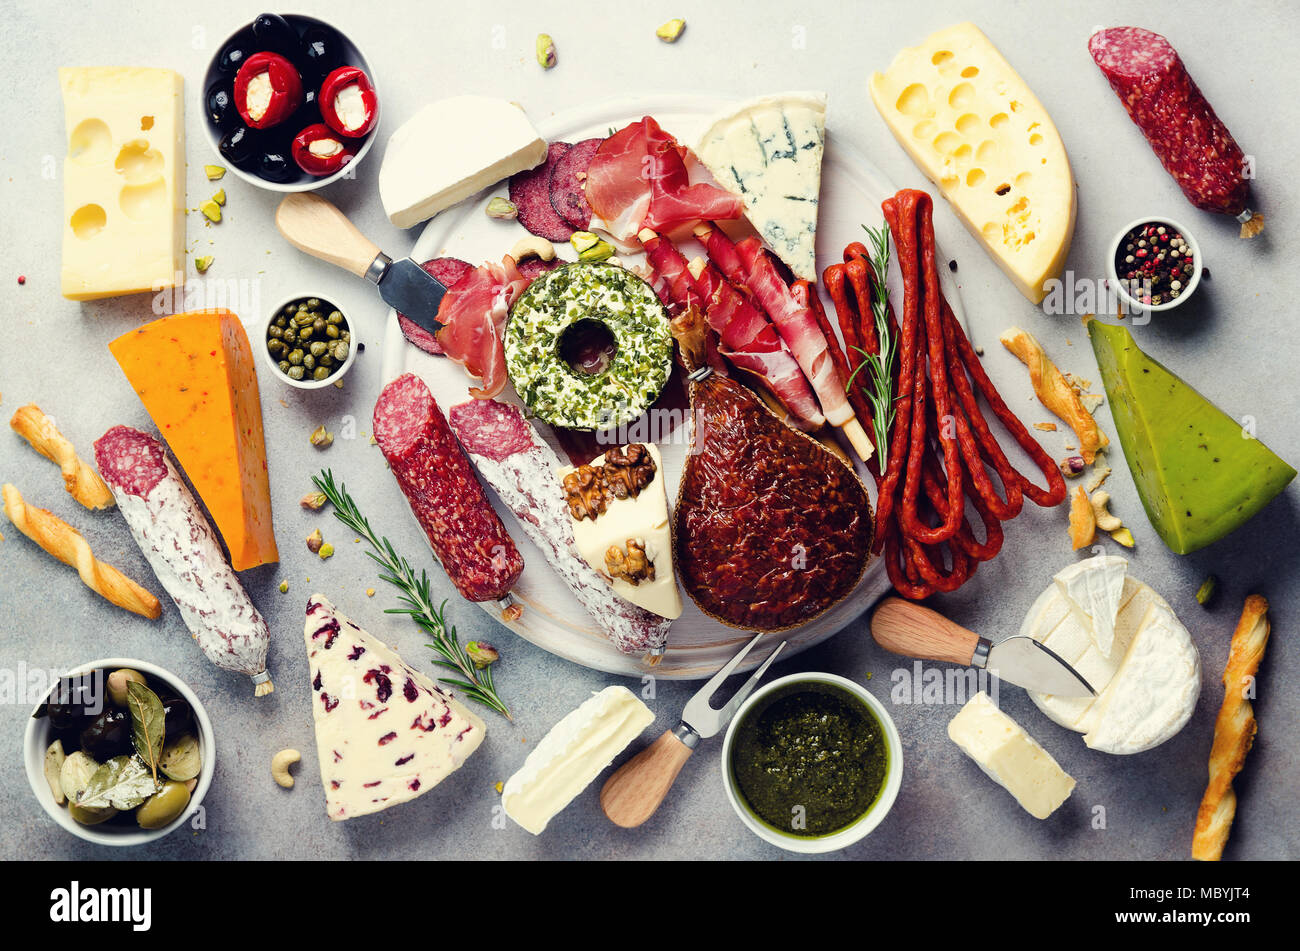 Cutting board with cold smoked meat, prosciutto, salami, assortment of cheeses, bread sticks, capers, olives on grey stone background. Cheese and meat appetizer. Top view, copy space, flat lay - Stock Image